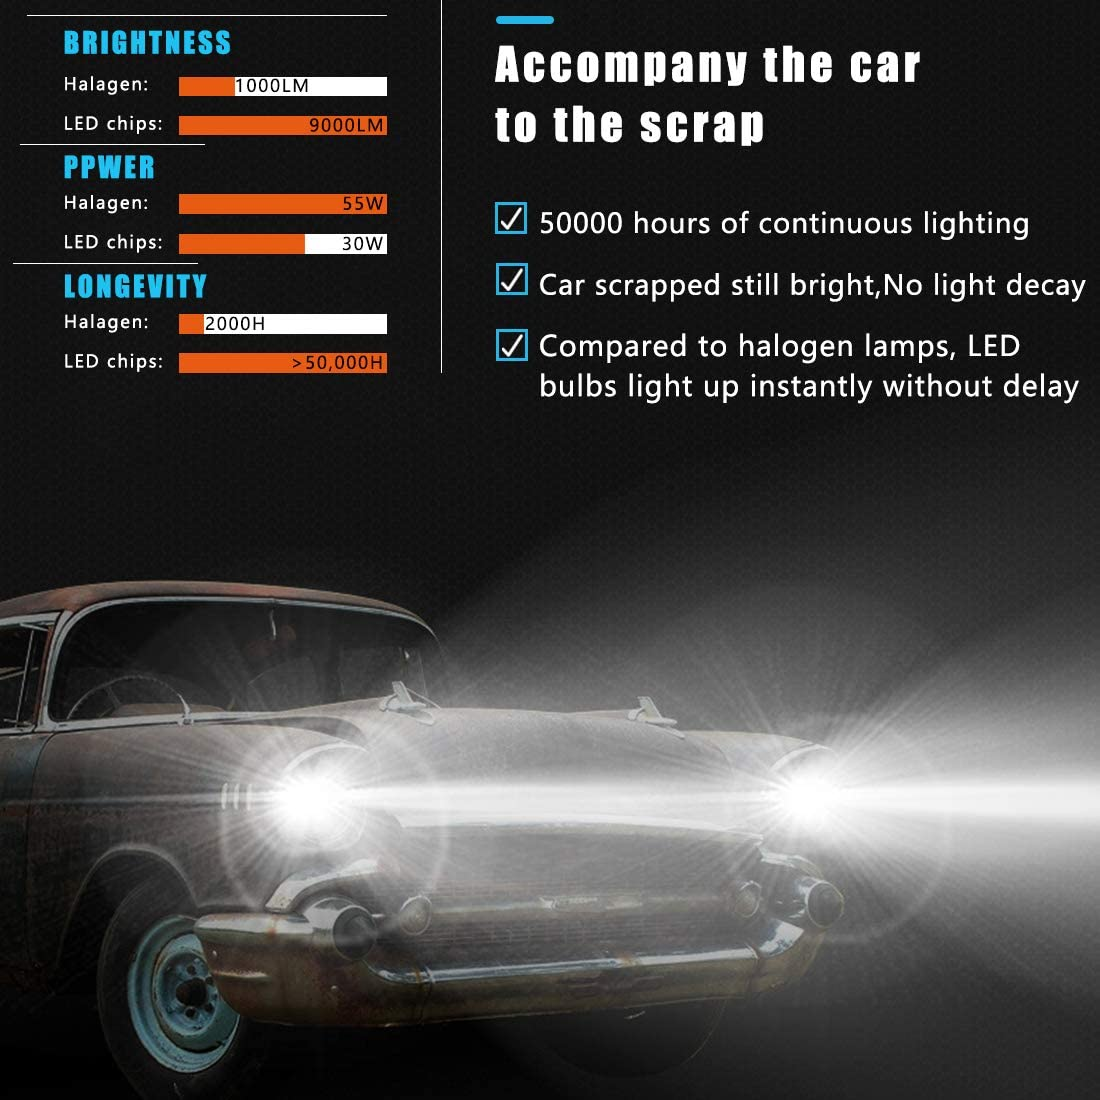 AnvFlik H7 Led Headlight Bulbs Mini Design 60W 6500K 10000LM White Extremely Bright Waterproof,Car Replacement Lights of Halogen Head Lamp,Conversion Kit(2 Pack)